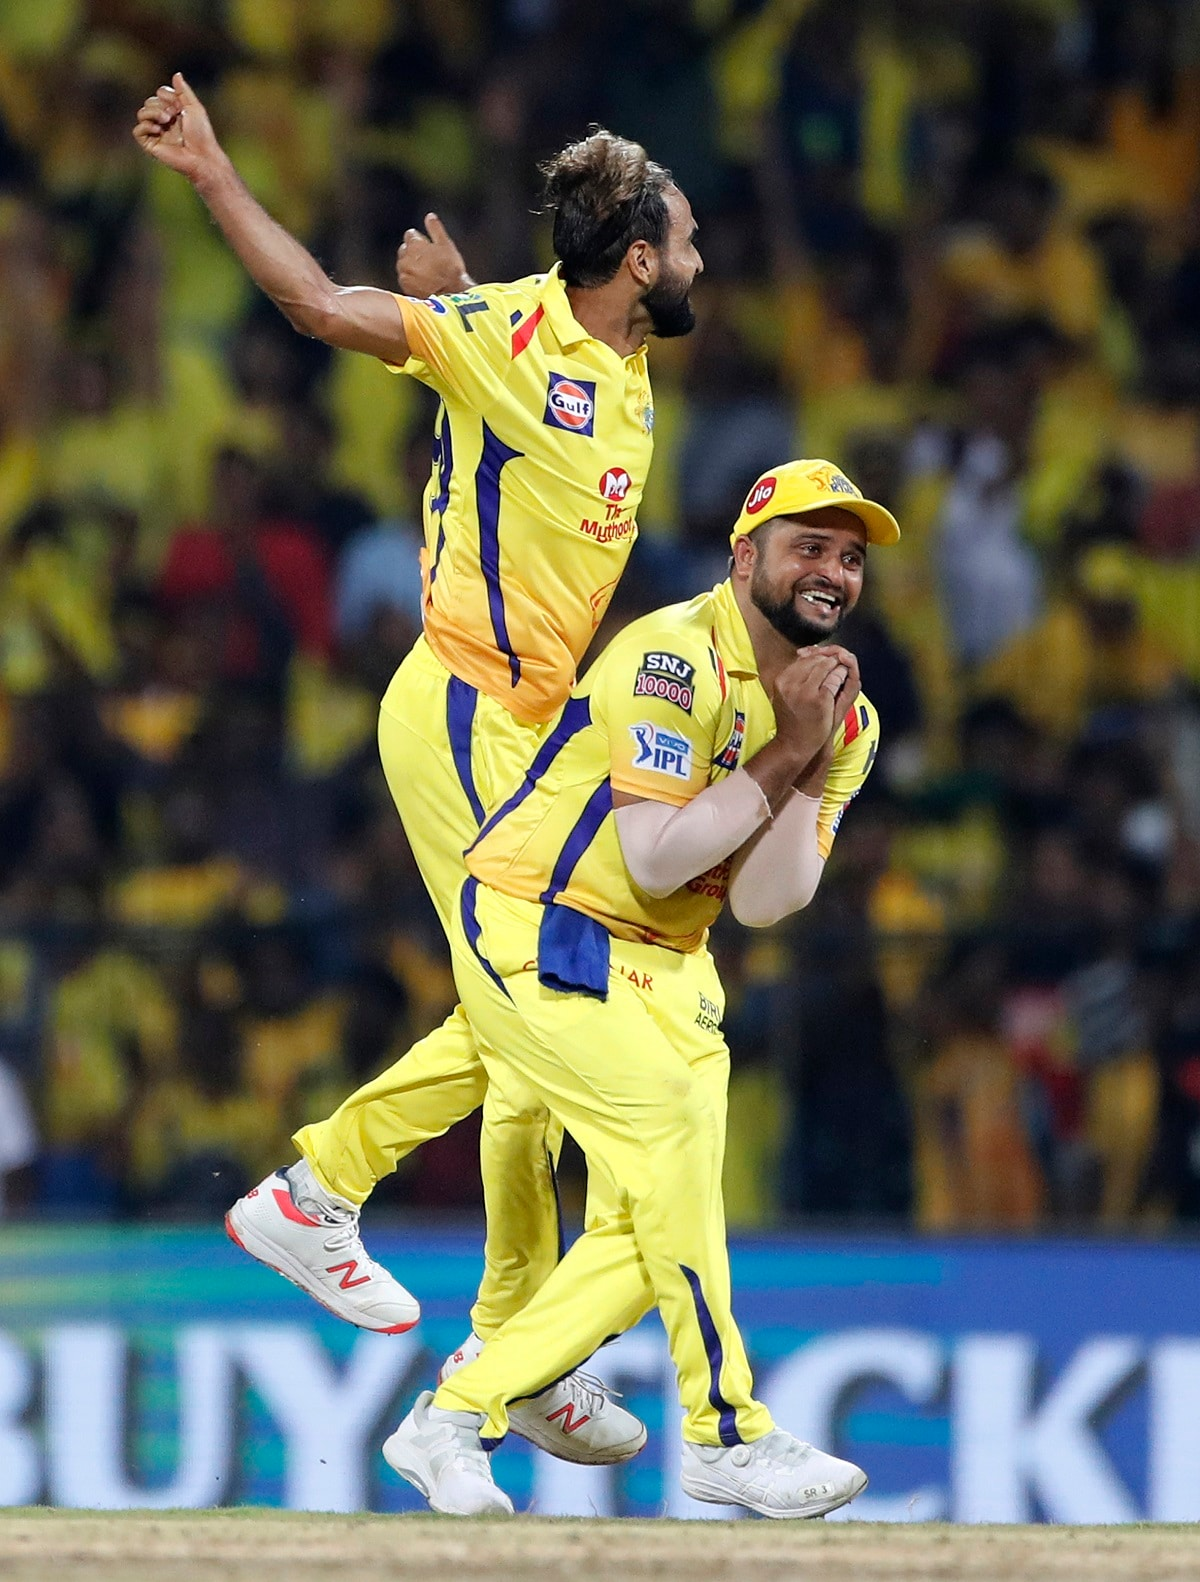 Chennai Super Kings' Imran Tahir, left, and Suresh Raina celebrates the dismissal of Royal Challengers Bangalore's Yuzvendra Chahal. (AP Photo/Aijaz Rahi)